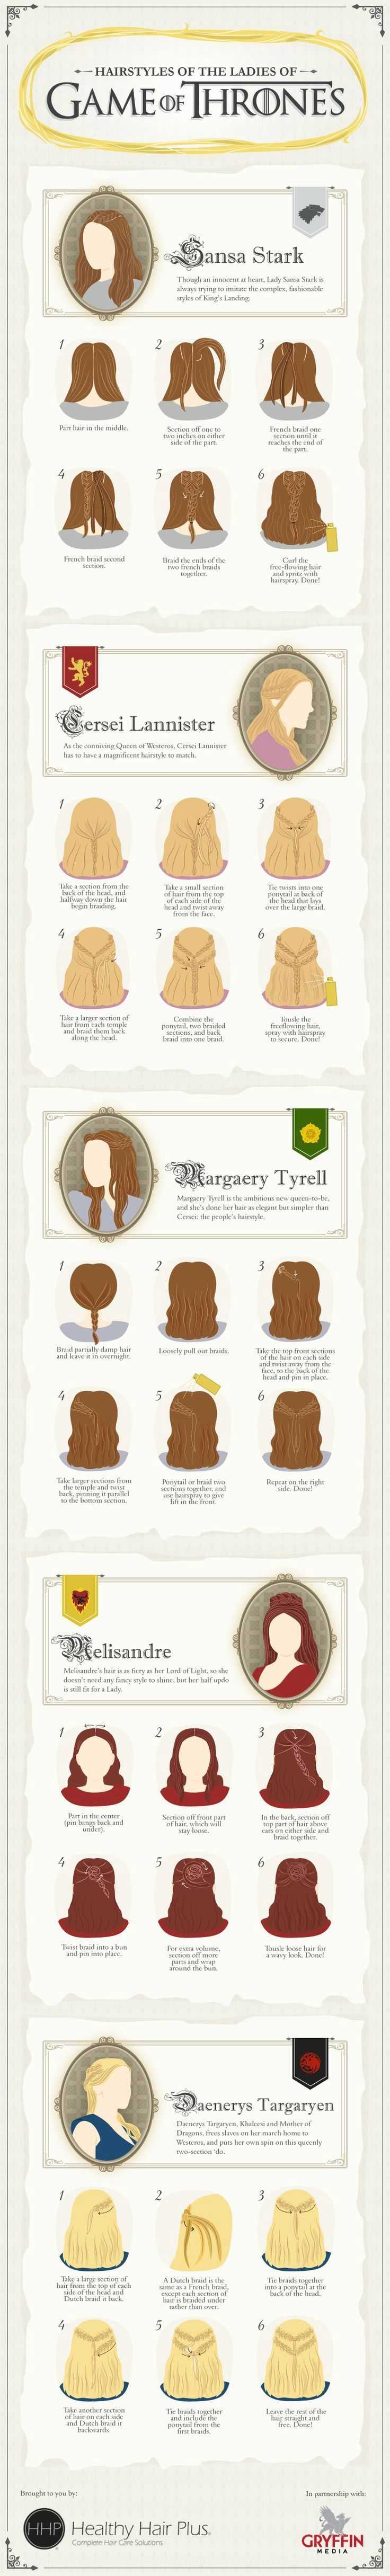 Bride Your Hair Like The Game Of Thrones